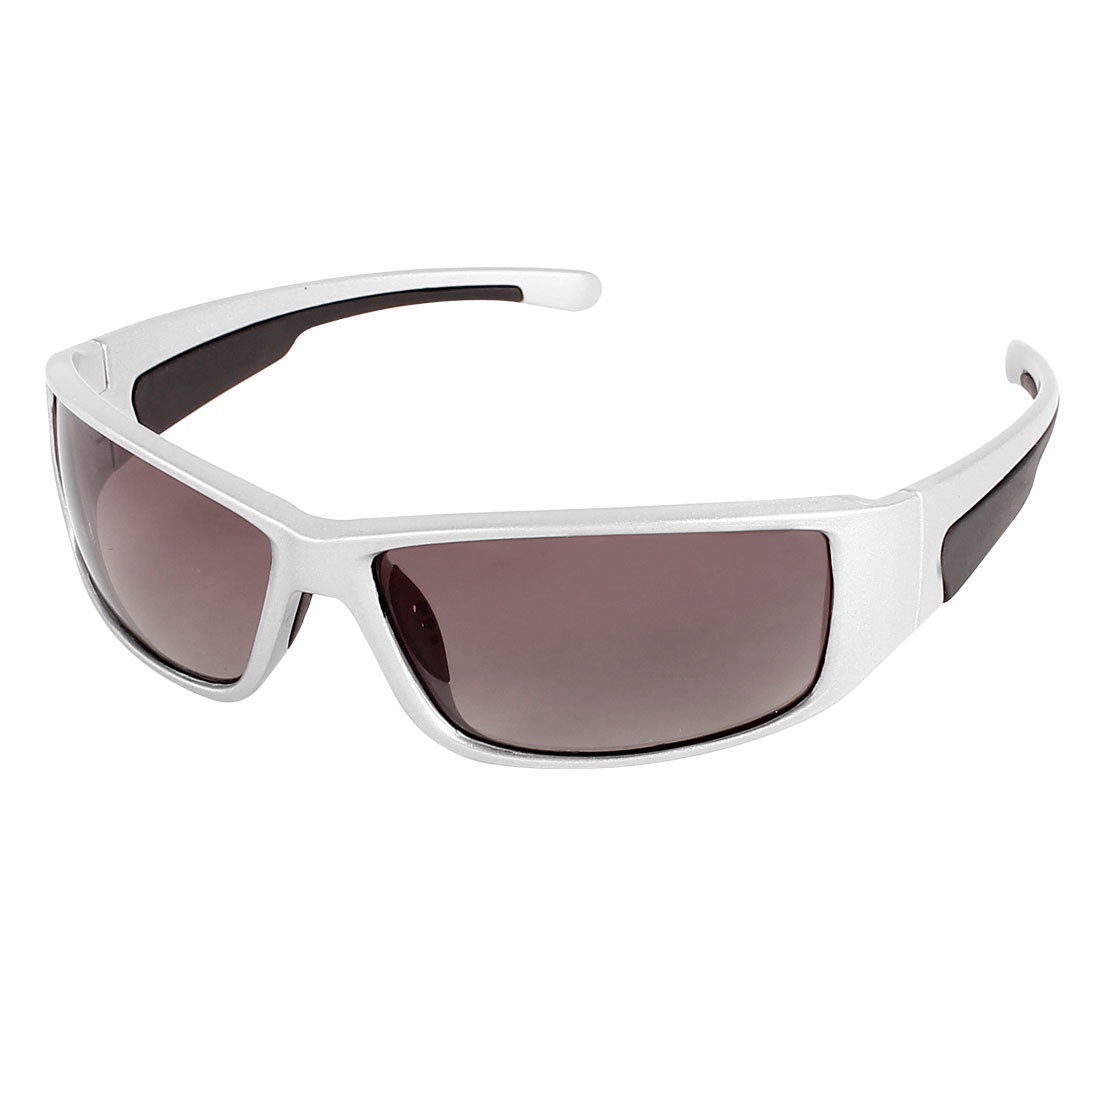 Unisex Outdoors Silver Tone Frame Brown Lens Polarized Sunglasses